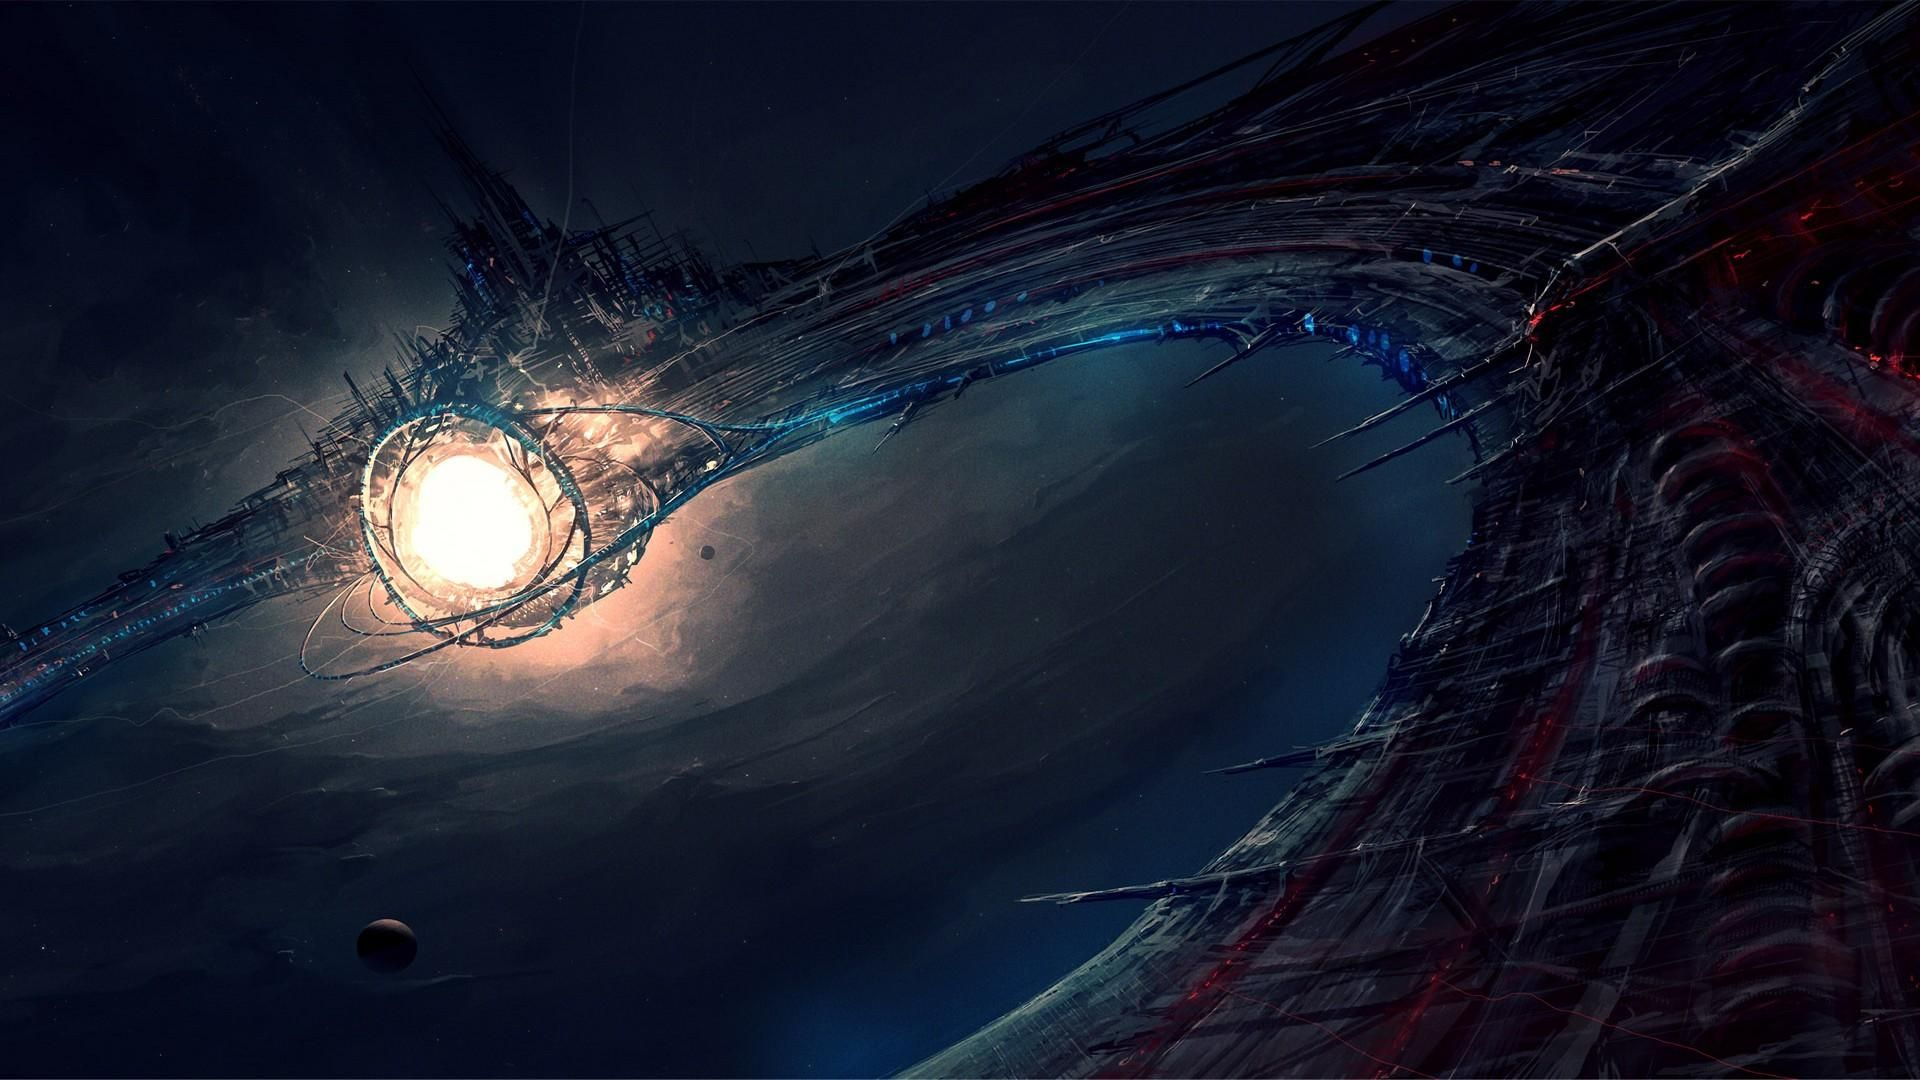 The Ring Space fantasy, Science fiction artwork, Alien